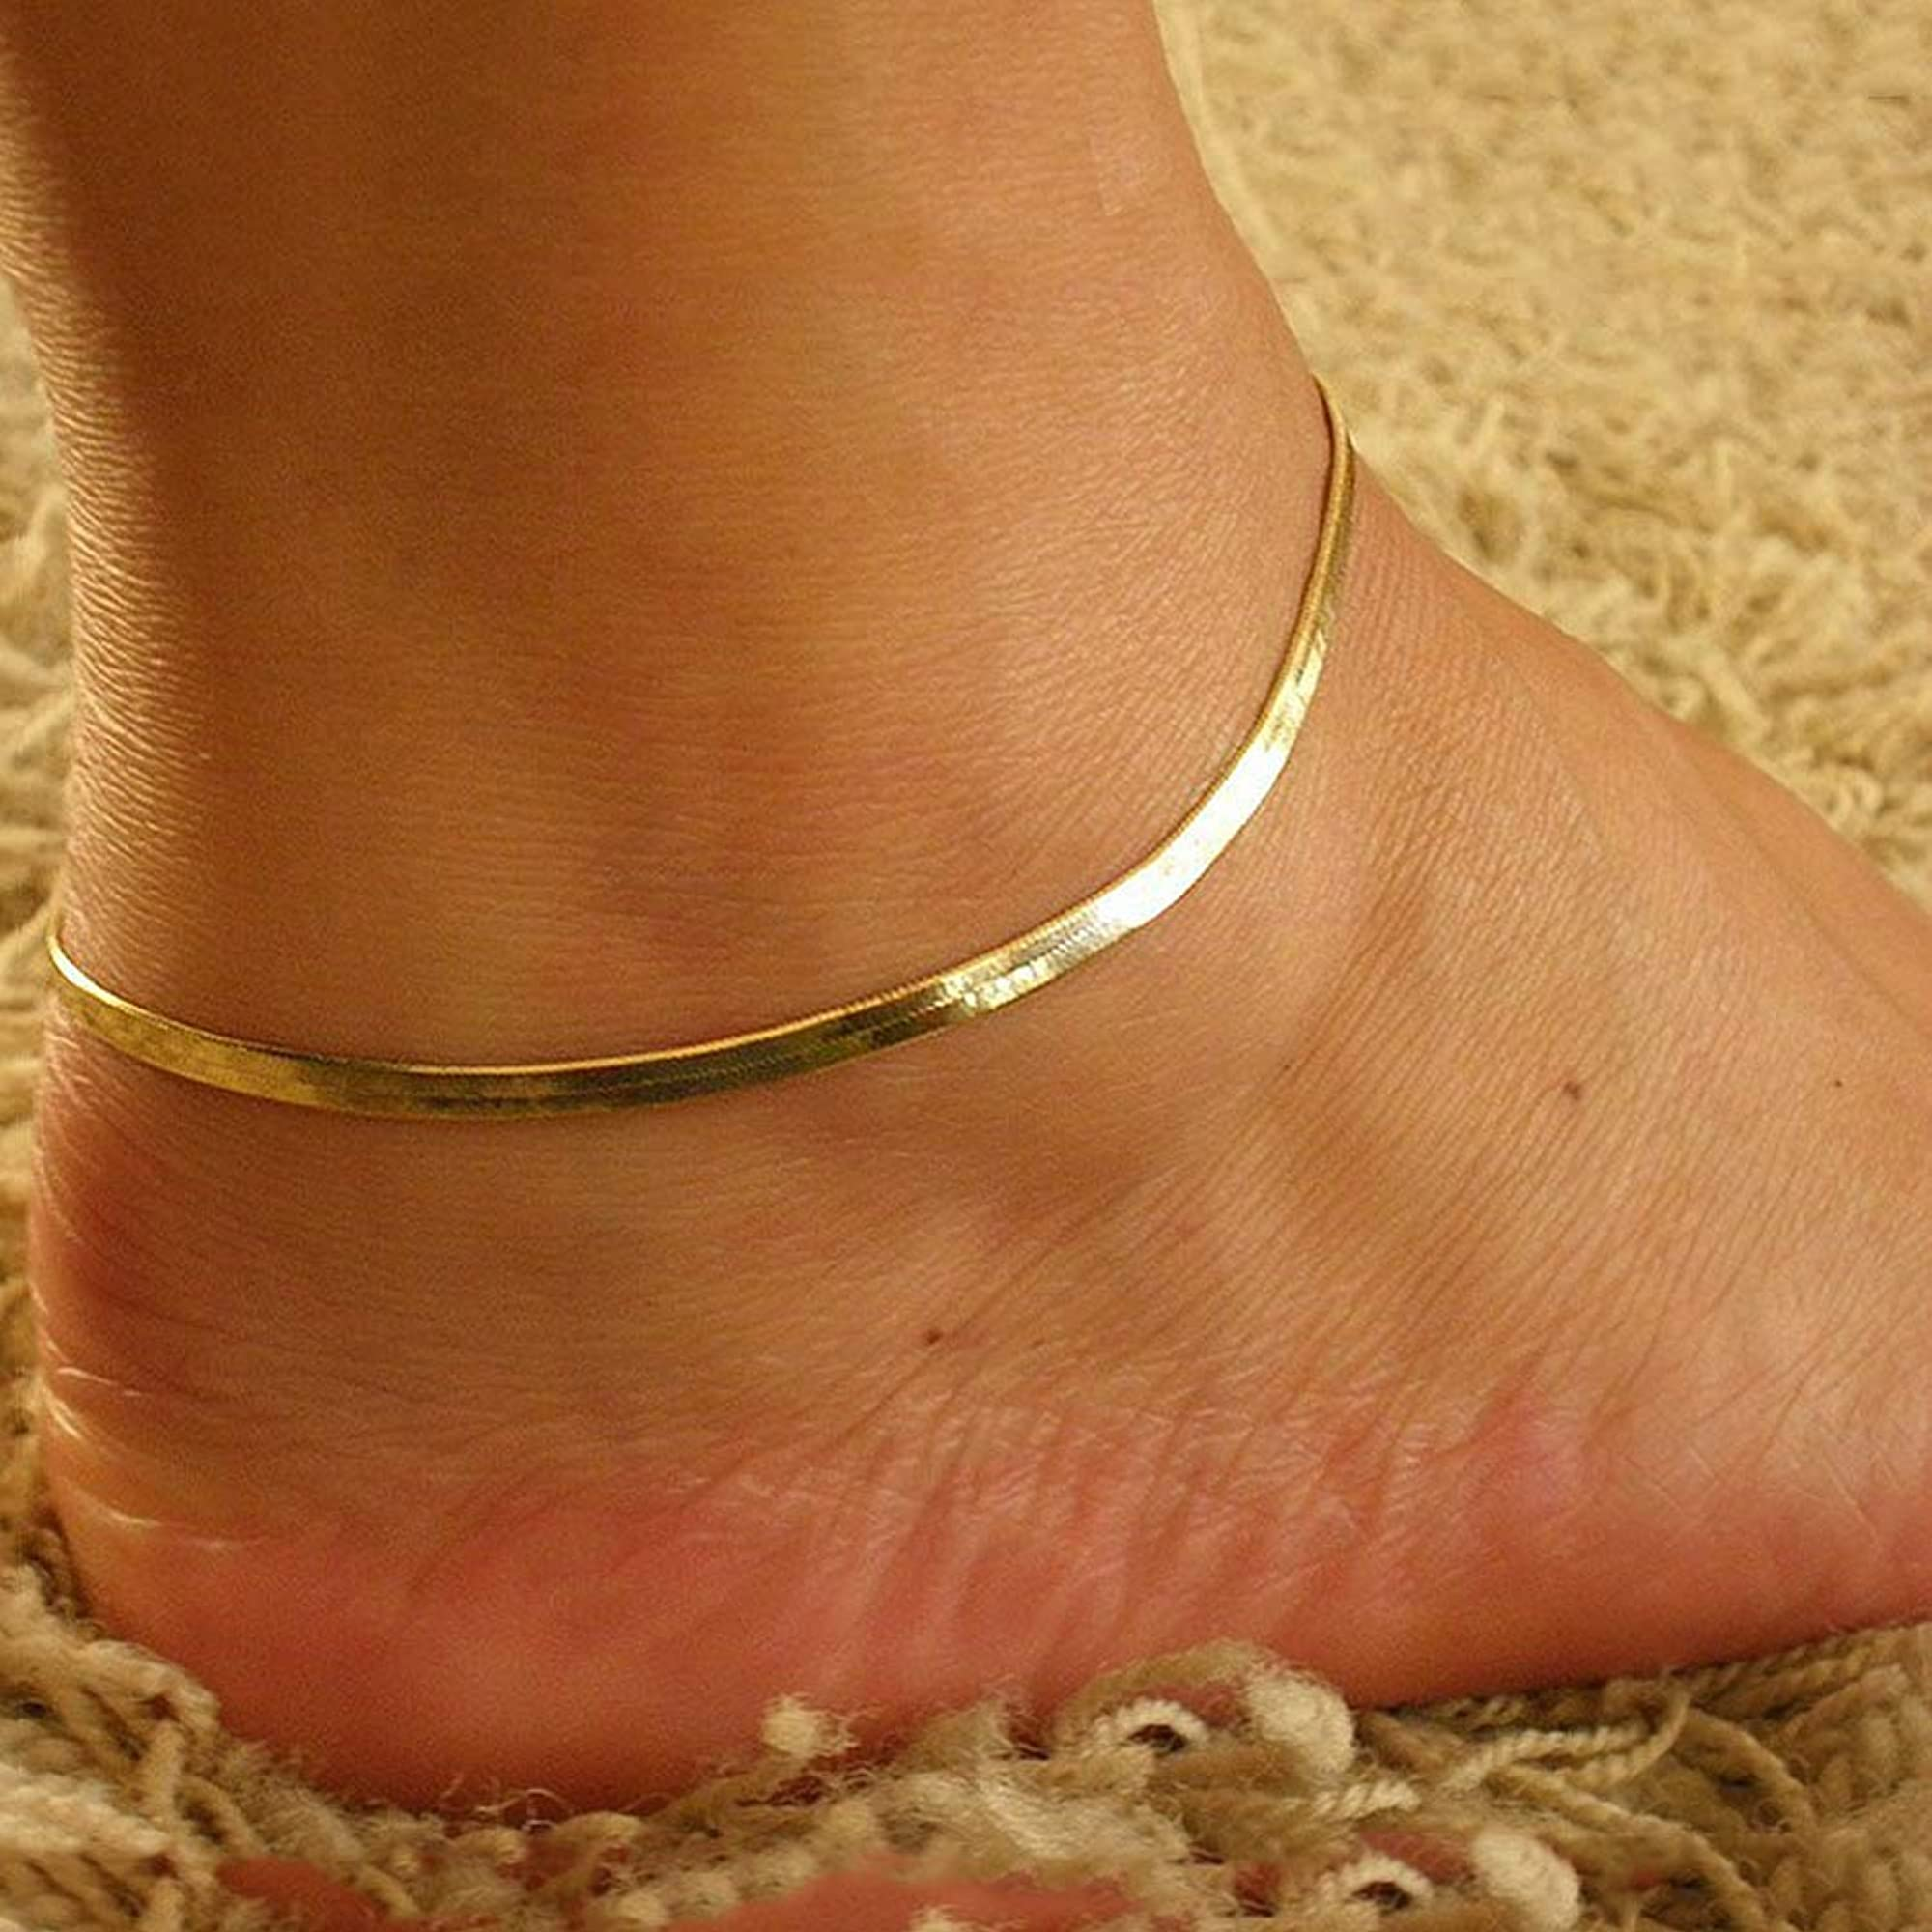 Dainty Ankle Bracelets For Women